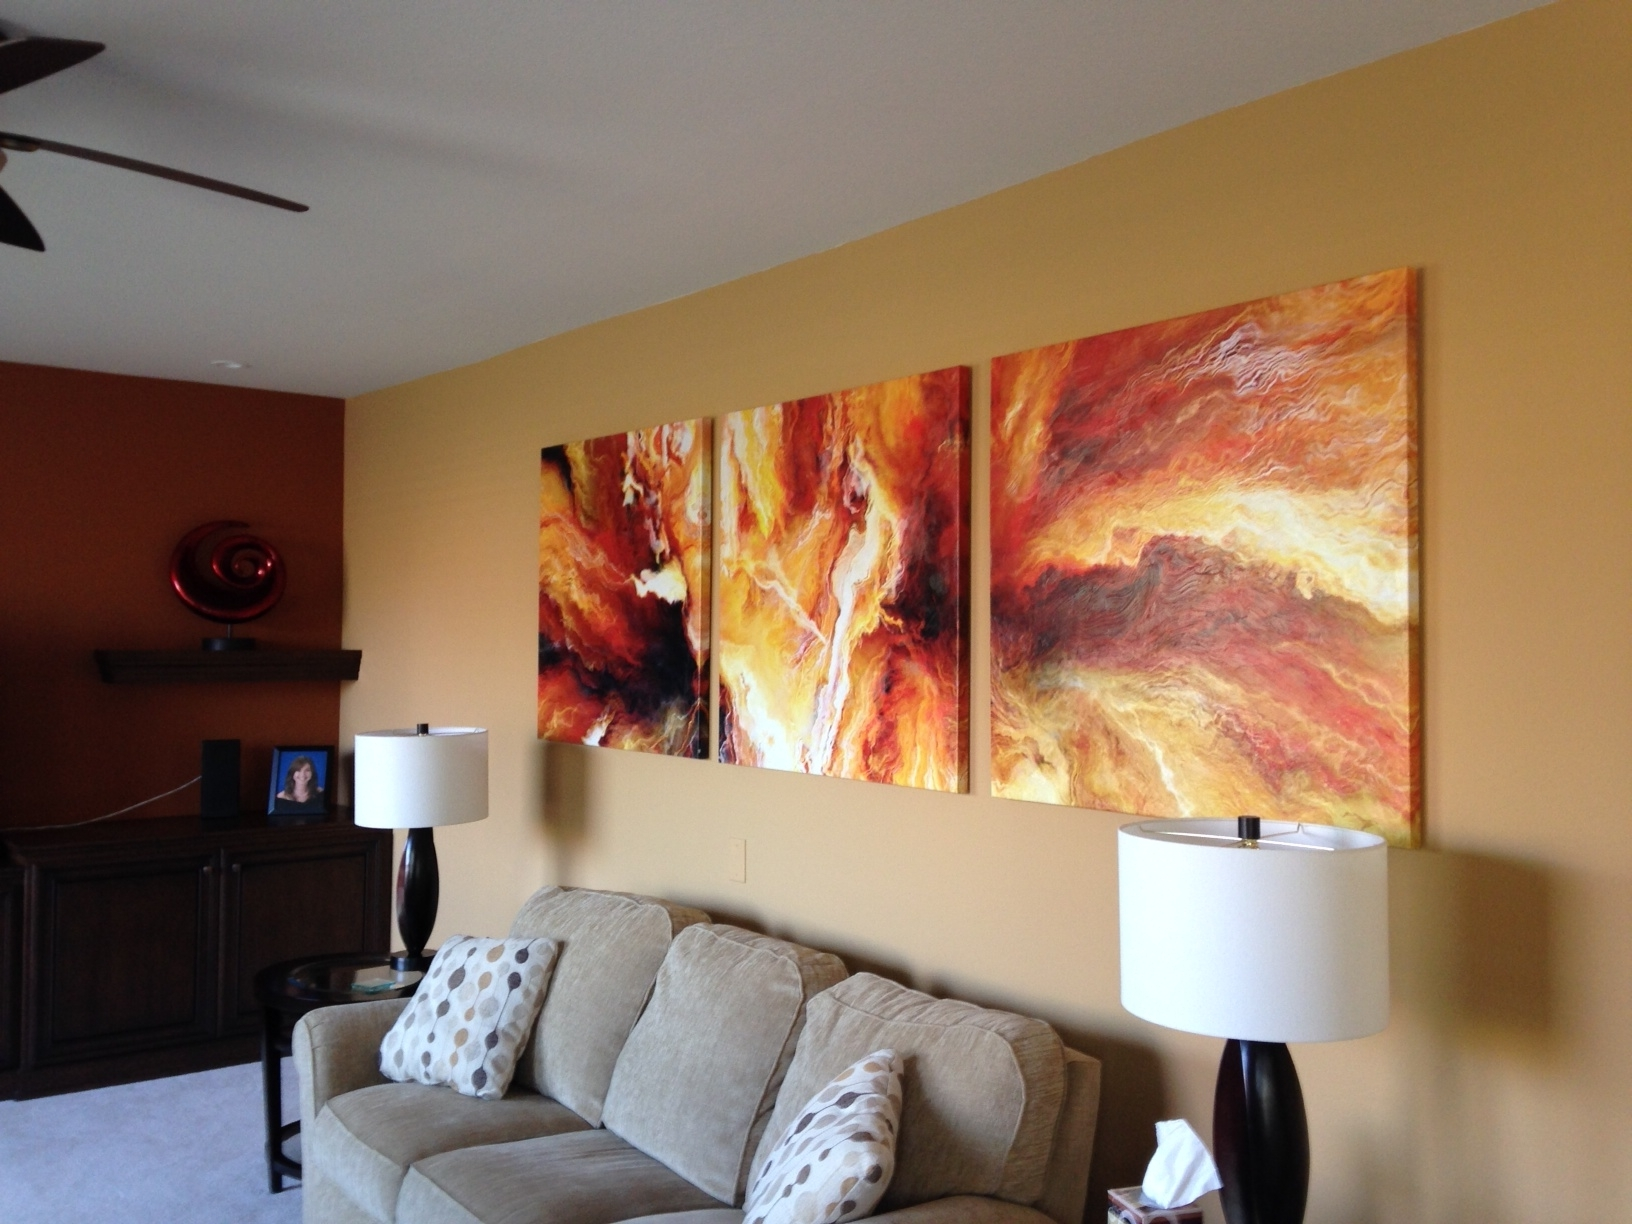 Newest Large Triptych Wall Art With Panel Large Abstract Painting Art Canvas Print Triptych Living Room (Gallery 1 of 15)